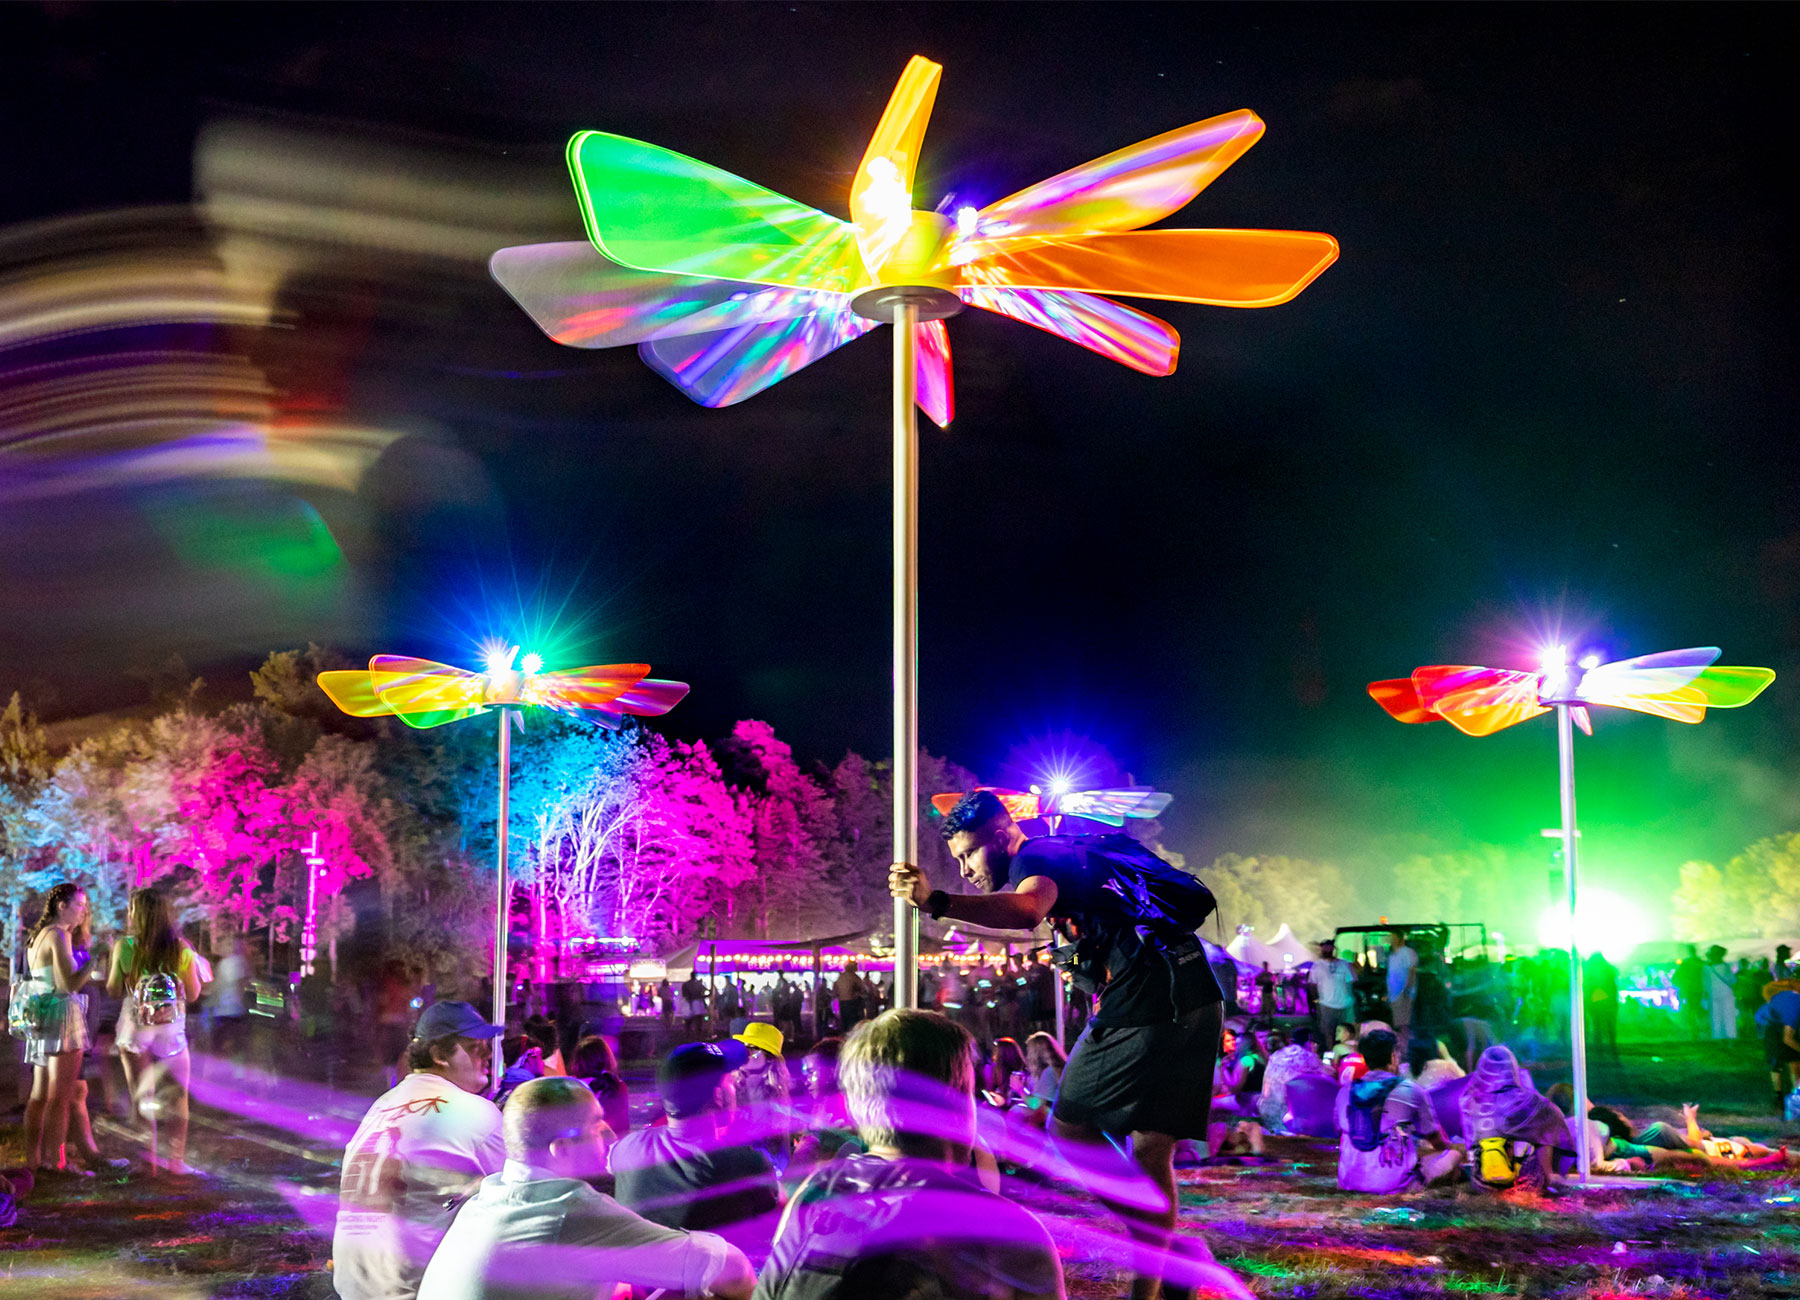 An art installation with 4 colorful structures with acrylic wing blades on top of a pole